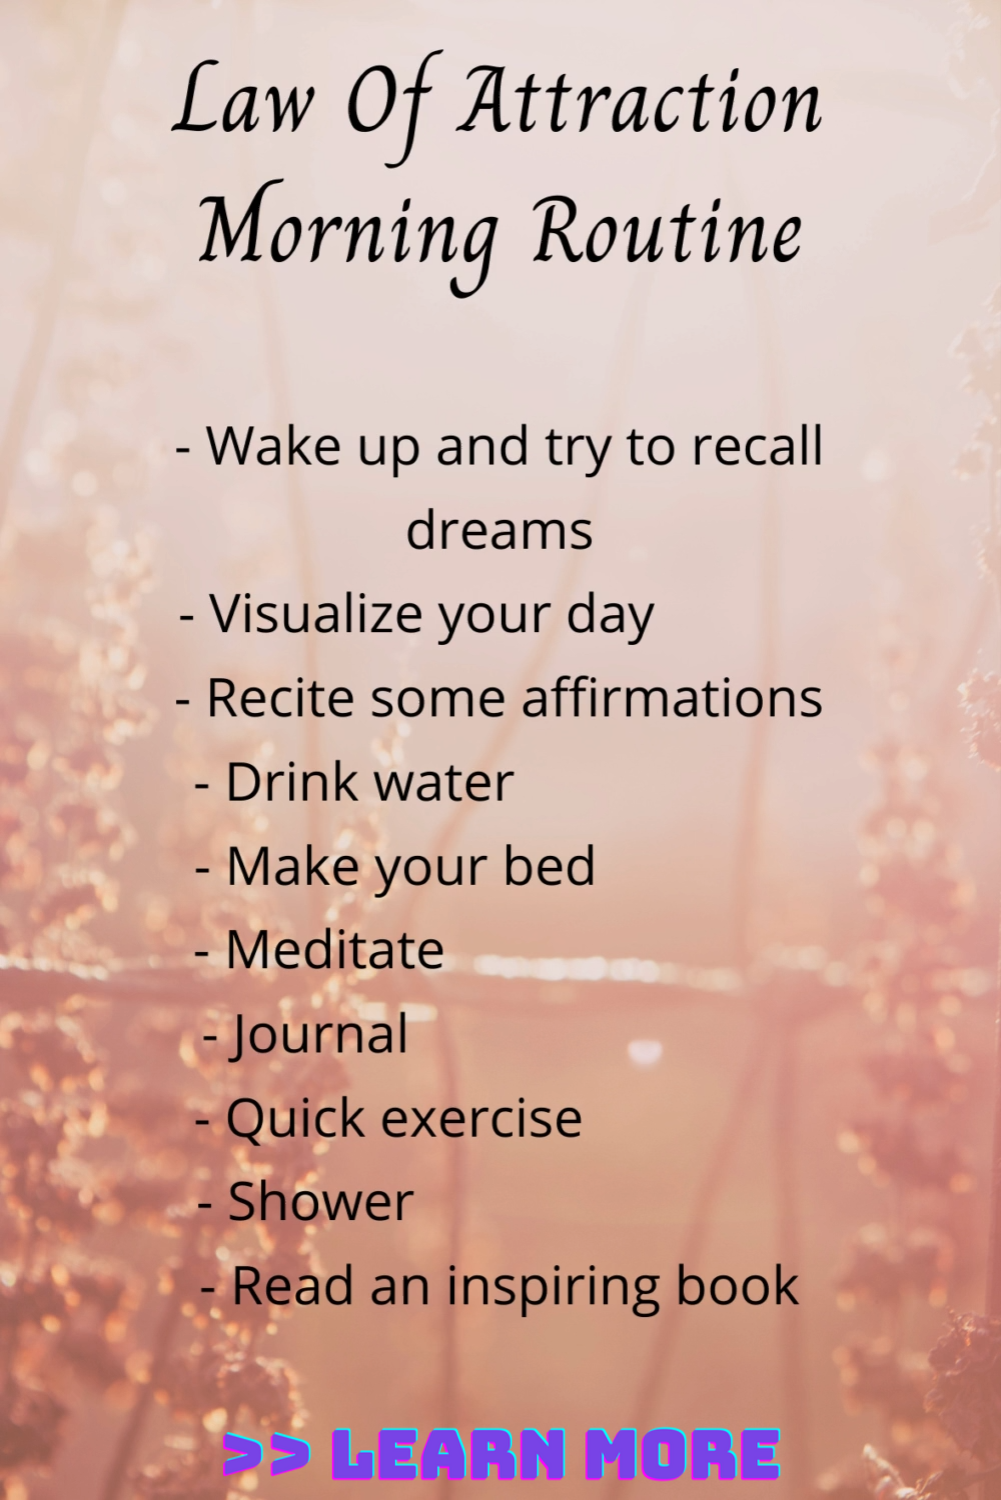 How to have an abundant day    Law of attraction morning routine